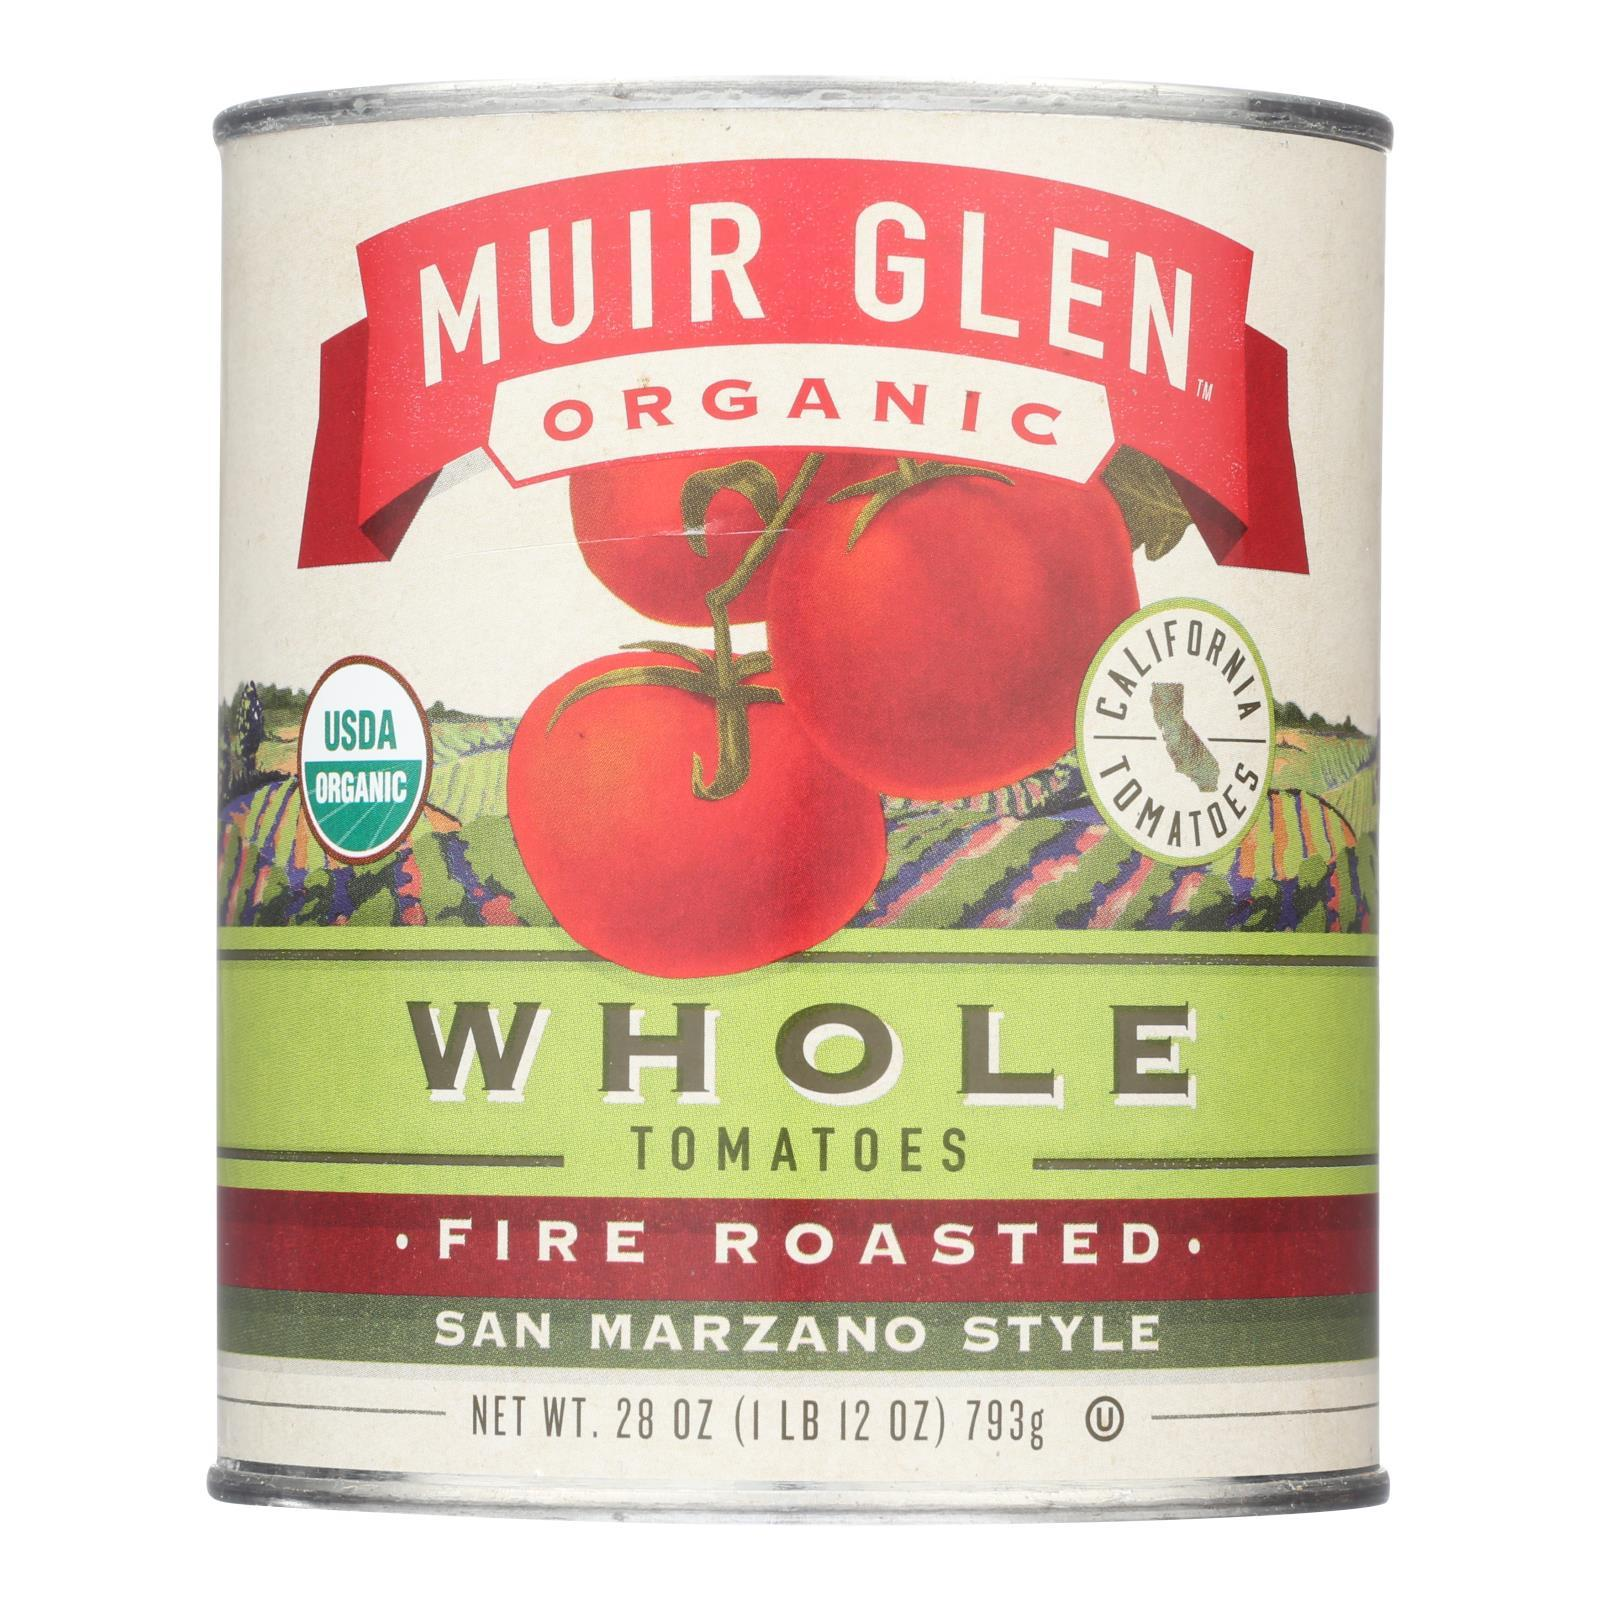 Muir Glen Fire Roasted Whole Tomatoes - Tomato - Case Of 6 - 28 Oz. - BeeGreen